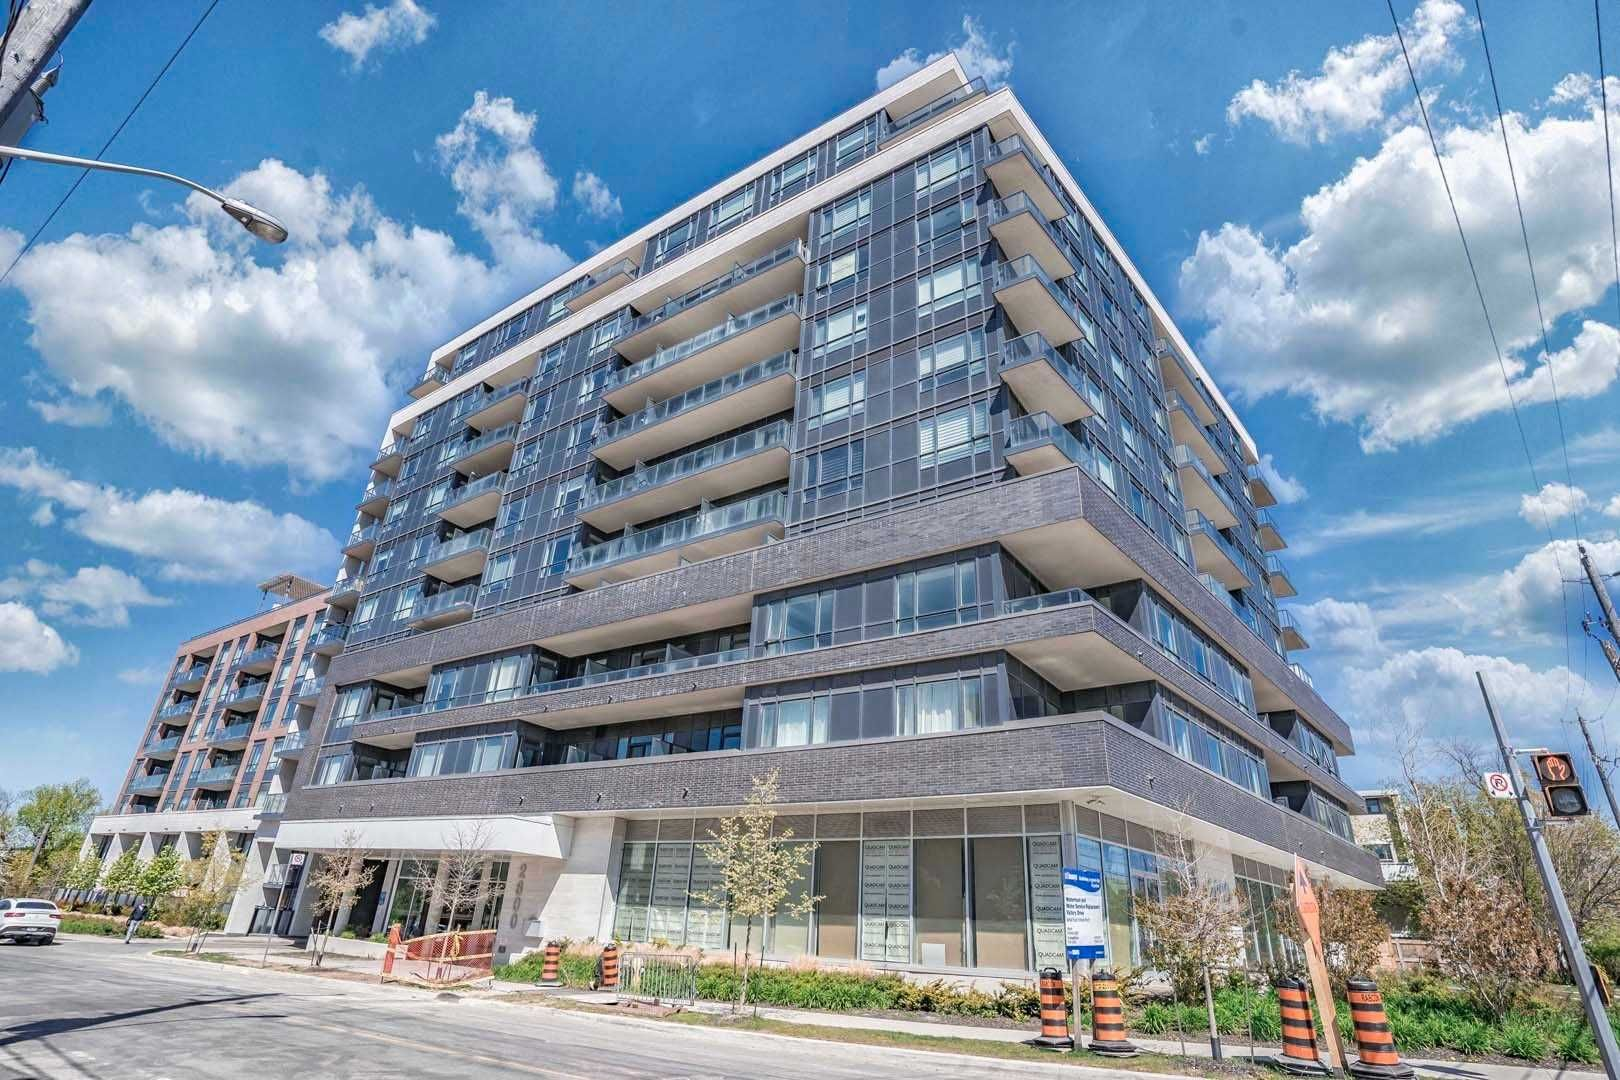 2800 Keele St, unit 605 for rent in Toronto - image #1